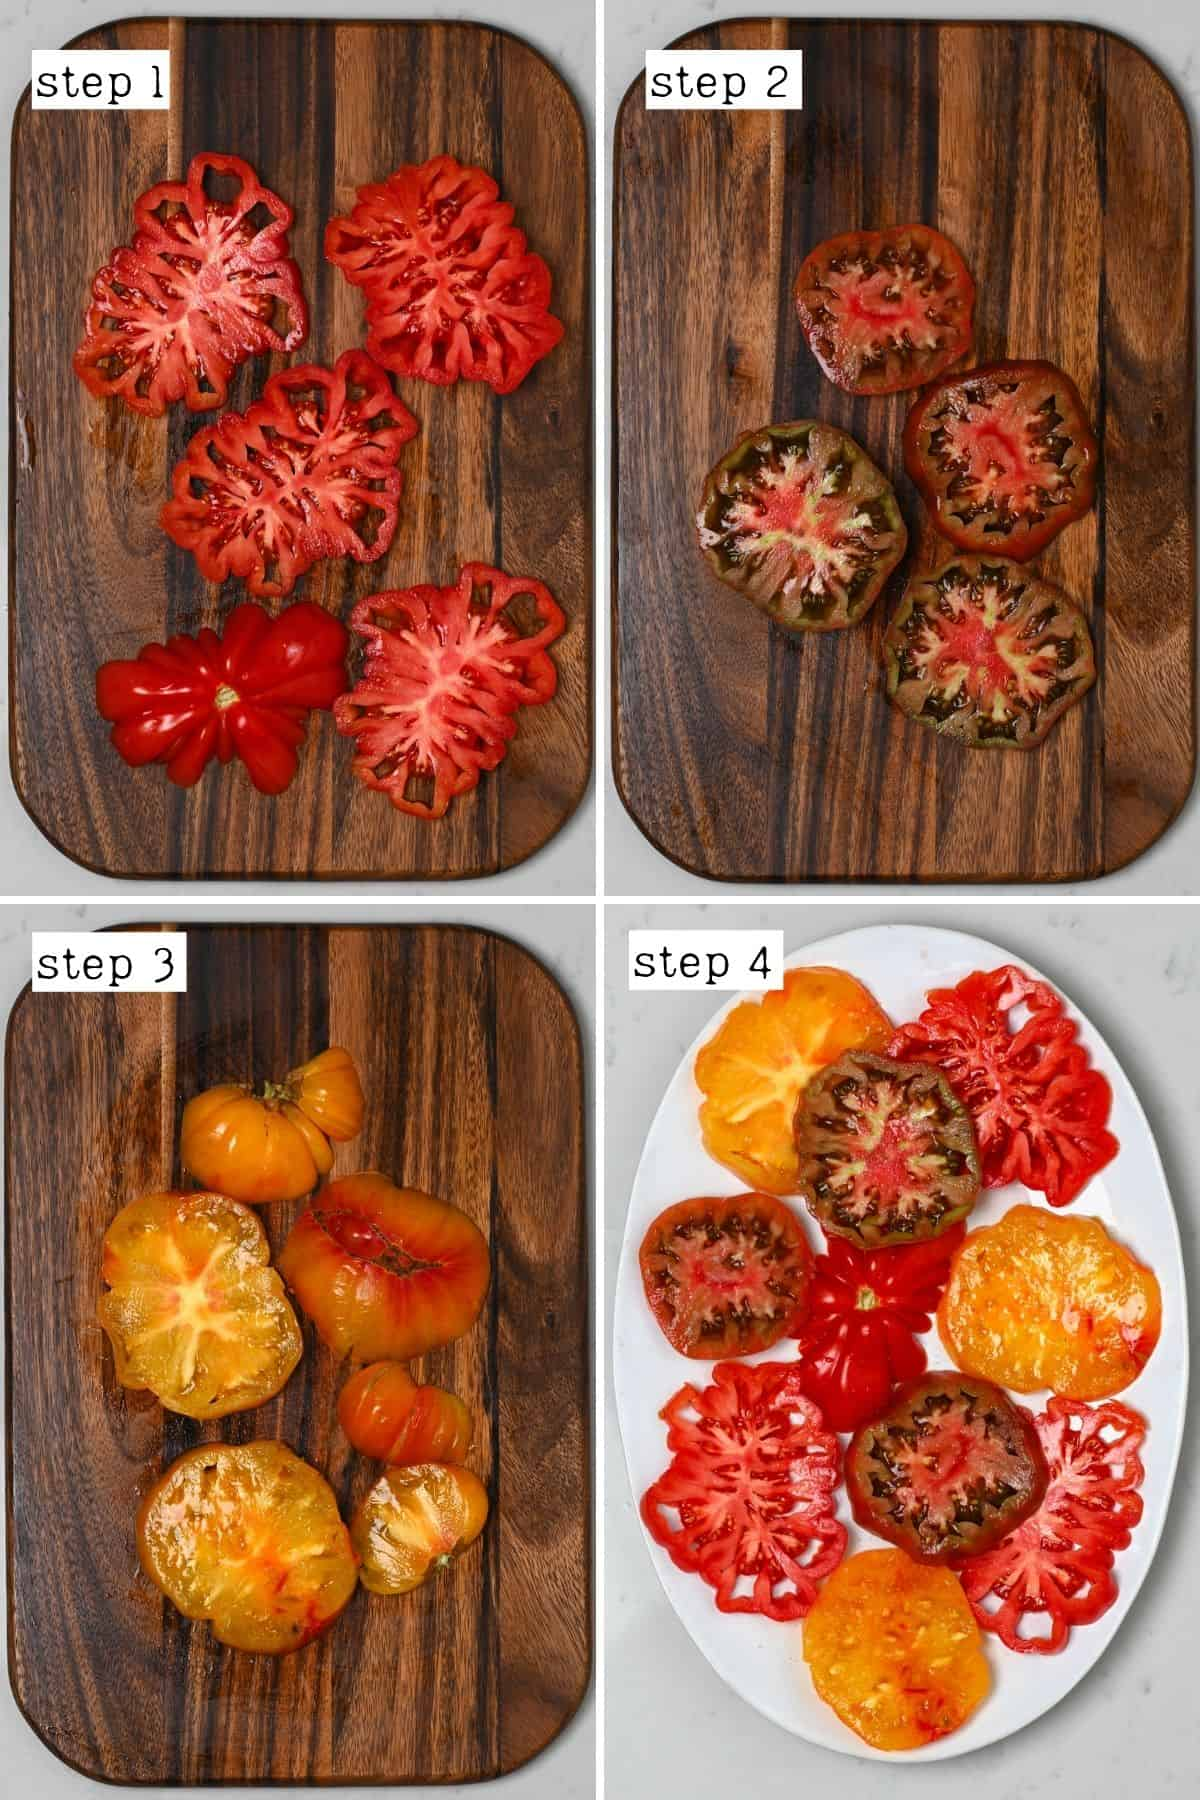 Steps for slicing tomatoes